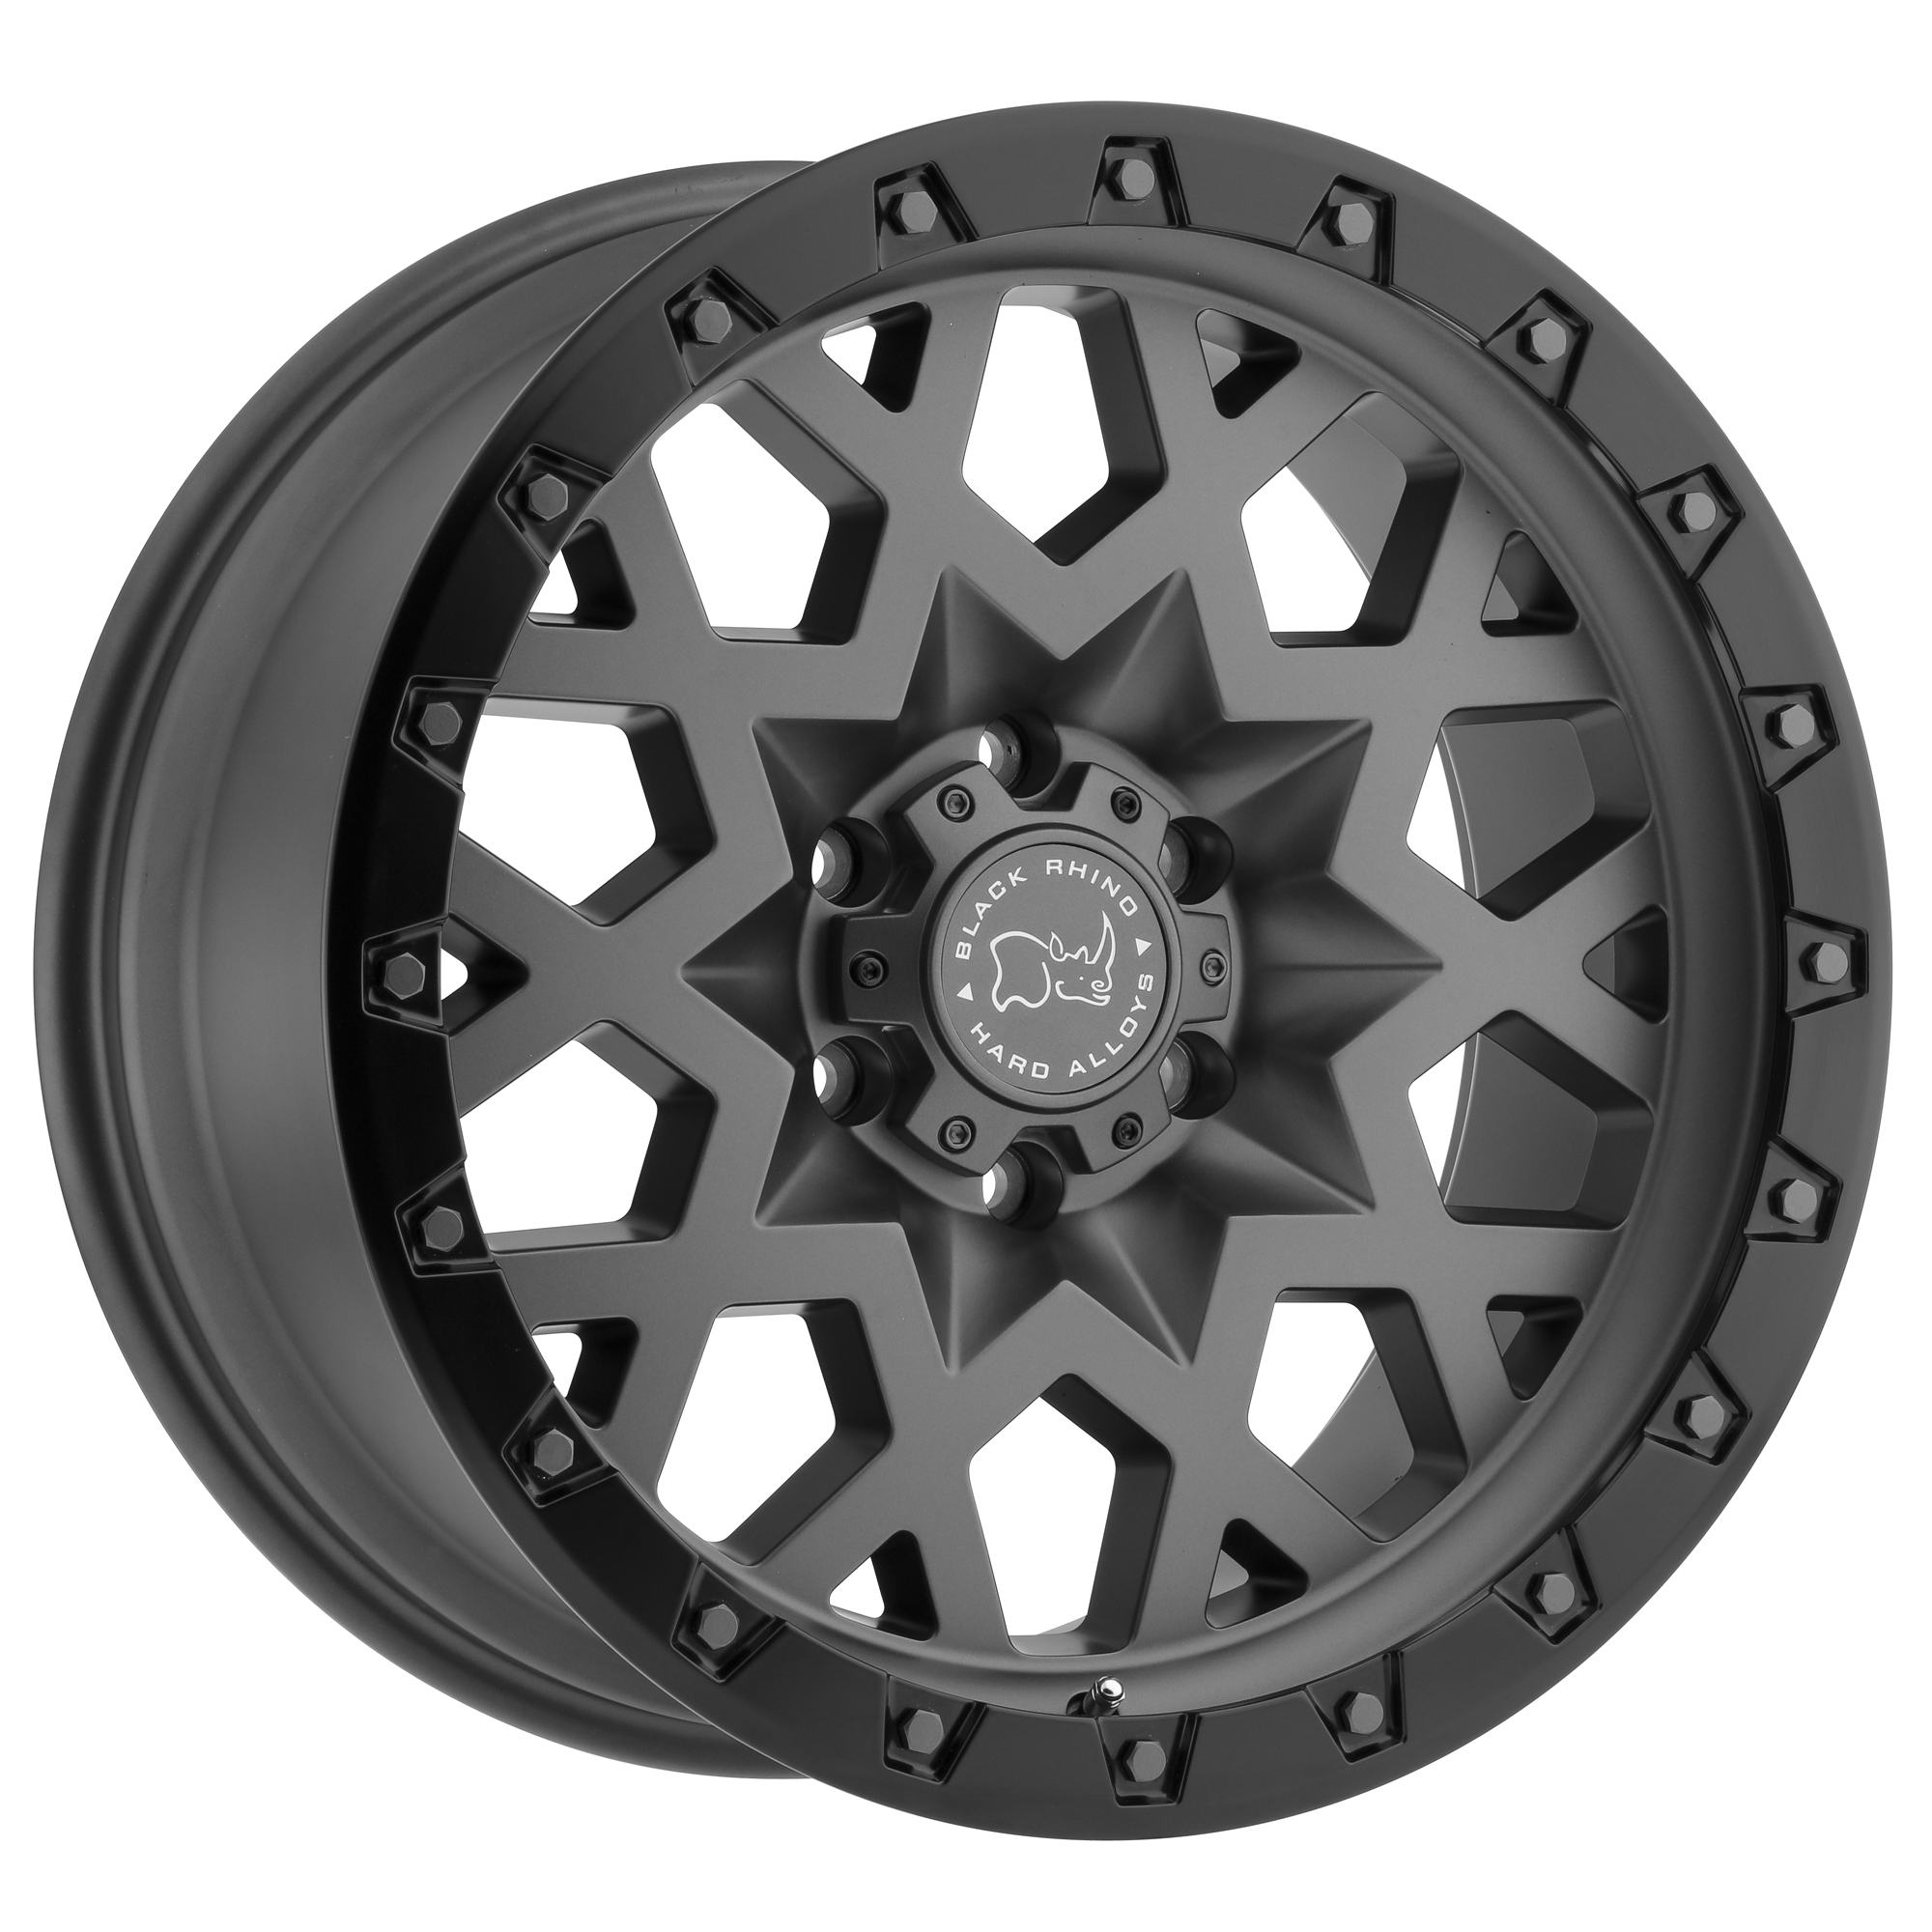 BLACK RHINO SPROCKET hliníkové disky 9,5x17 6x139.70 ET-18 MATTE GUNMETAL W/BLACK LIP EDGE (GUNMETAL BOLTS)